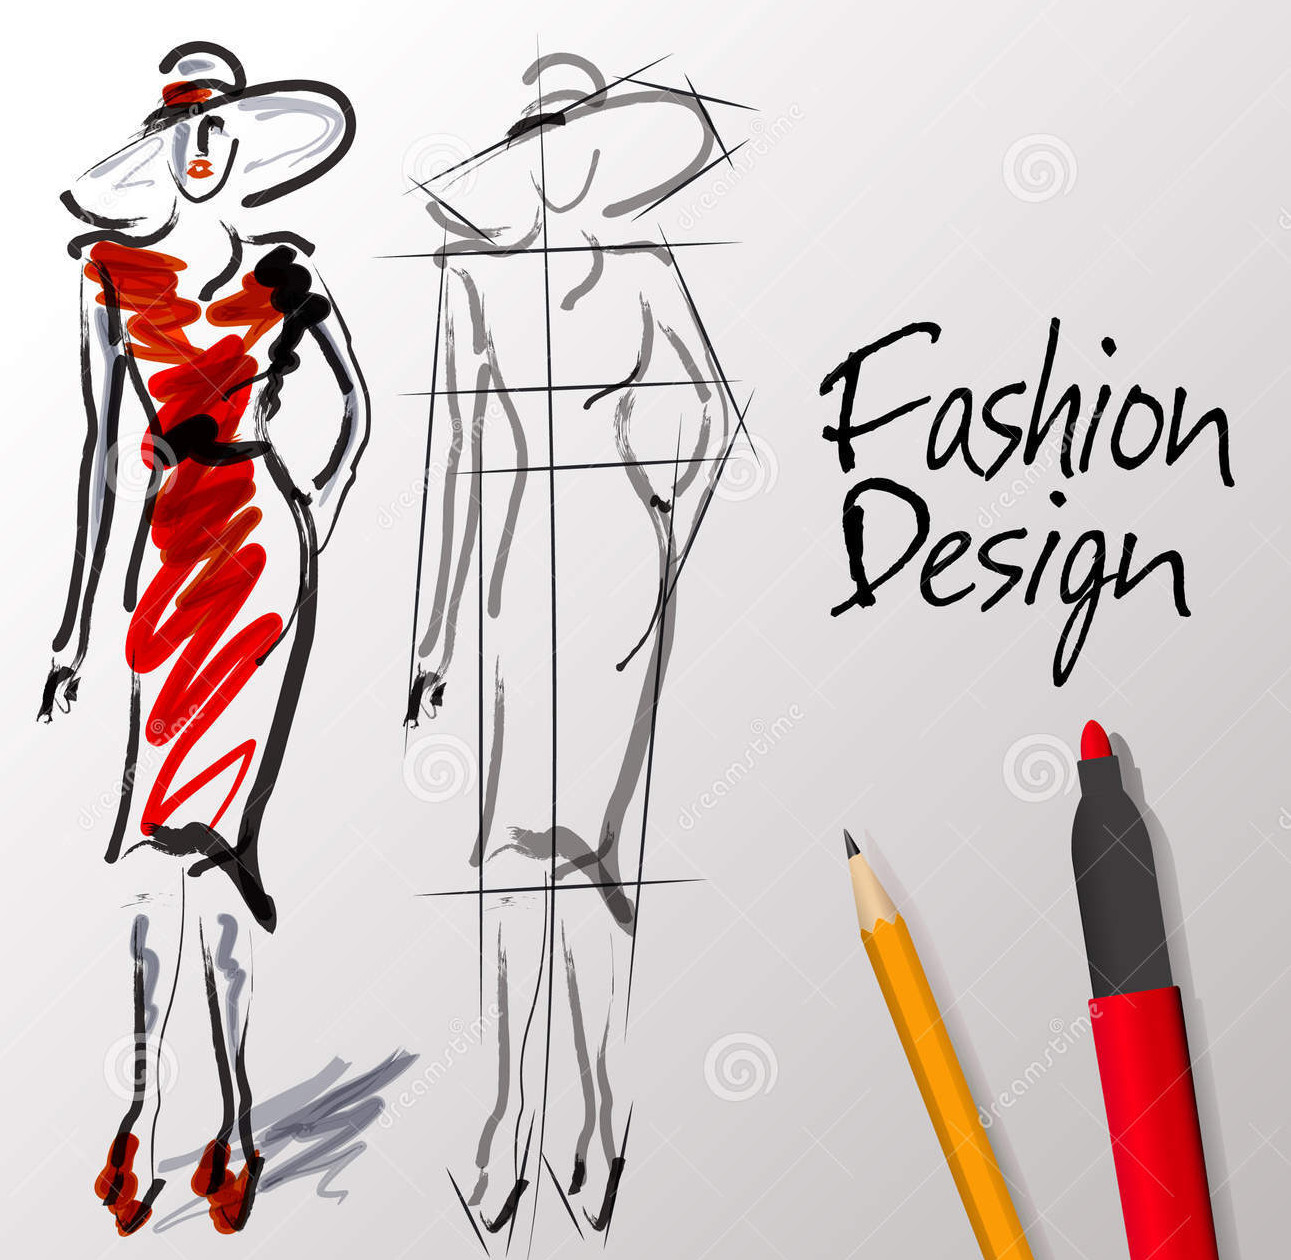 Advance Program in Fashion Design